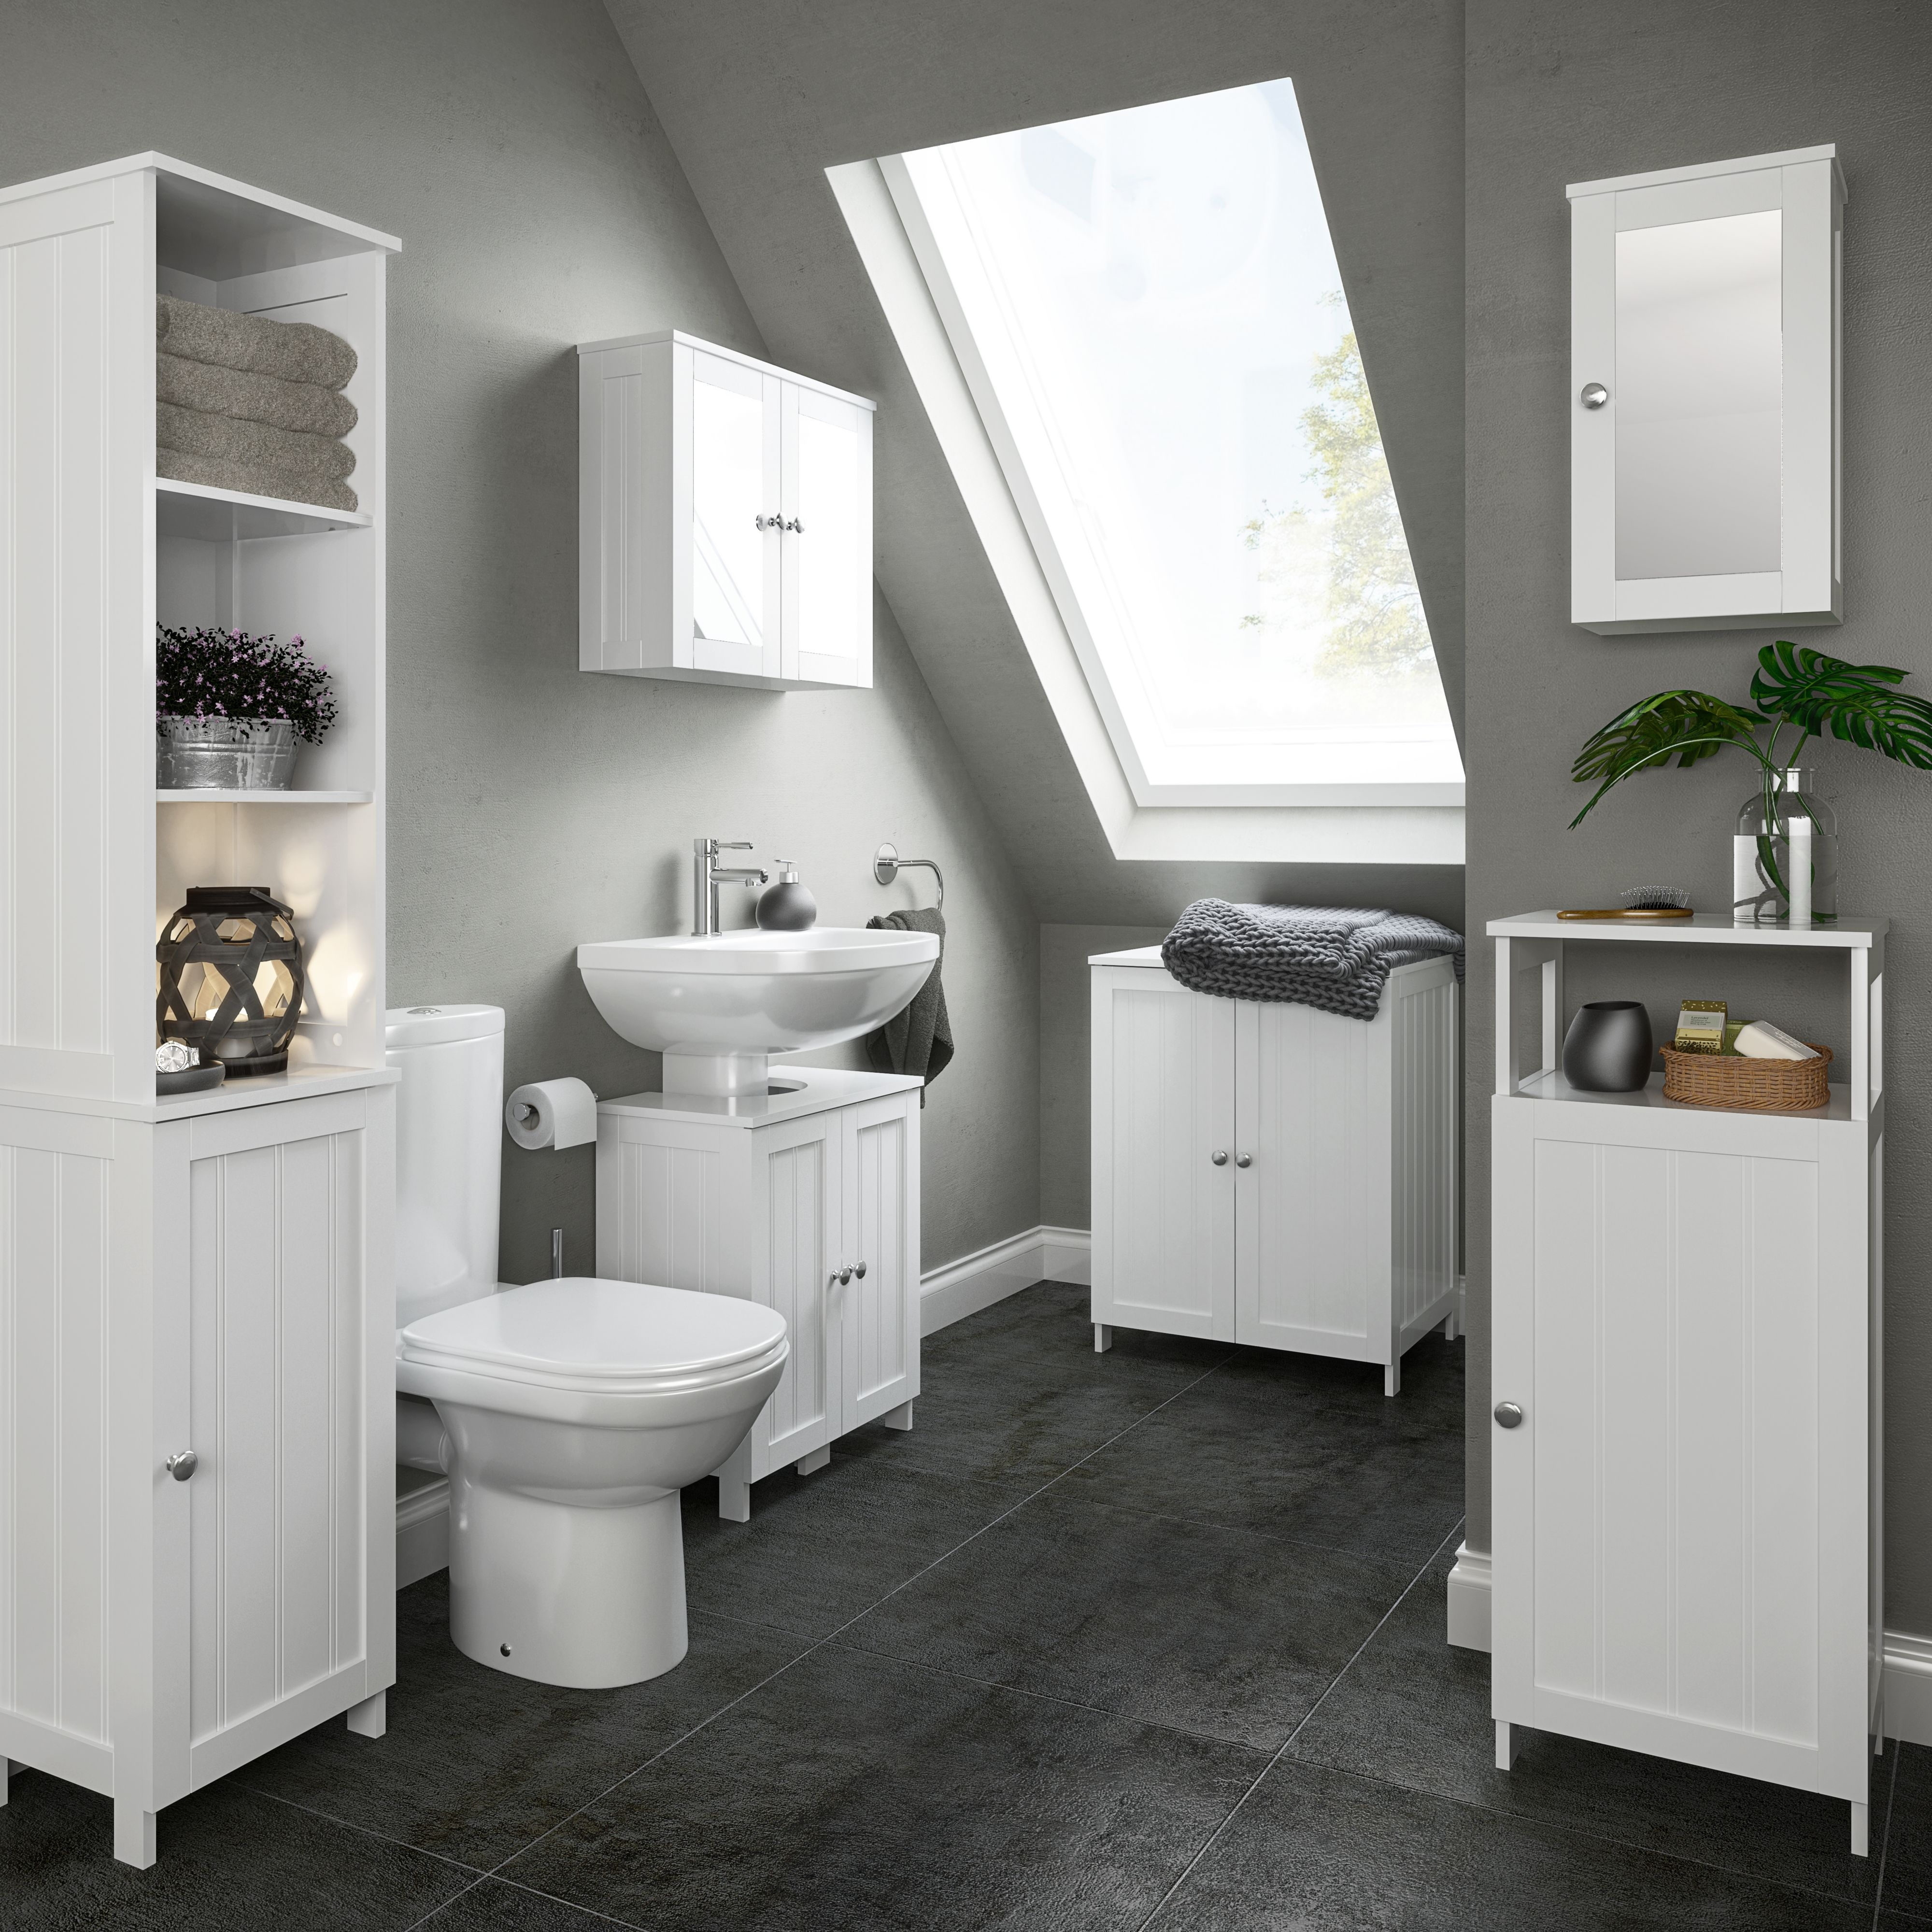 Permalink to Tall Bathroom Cabinets B&Q